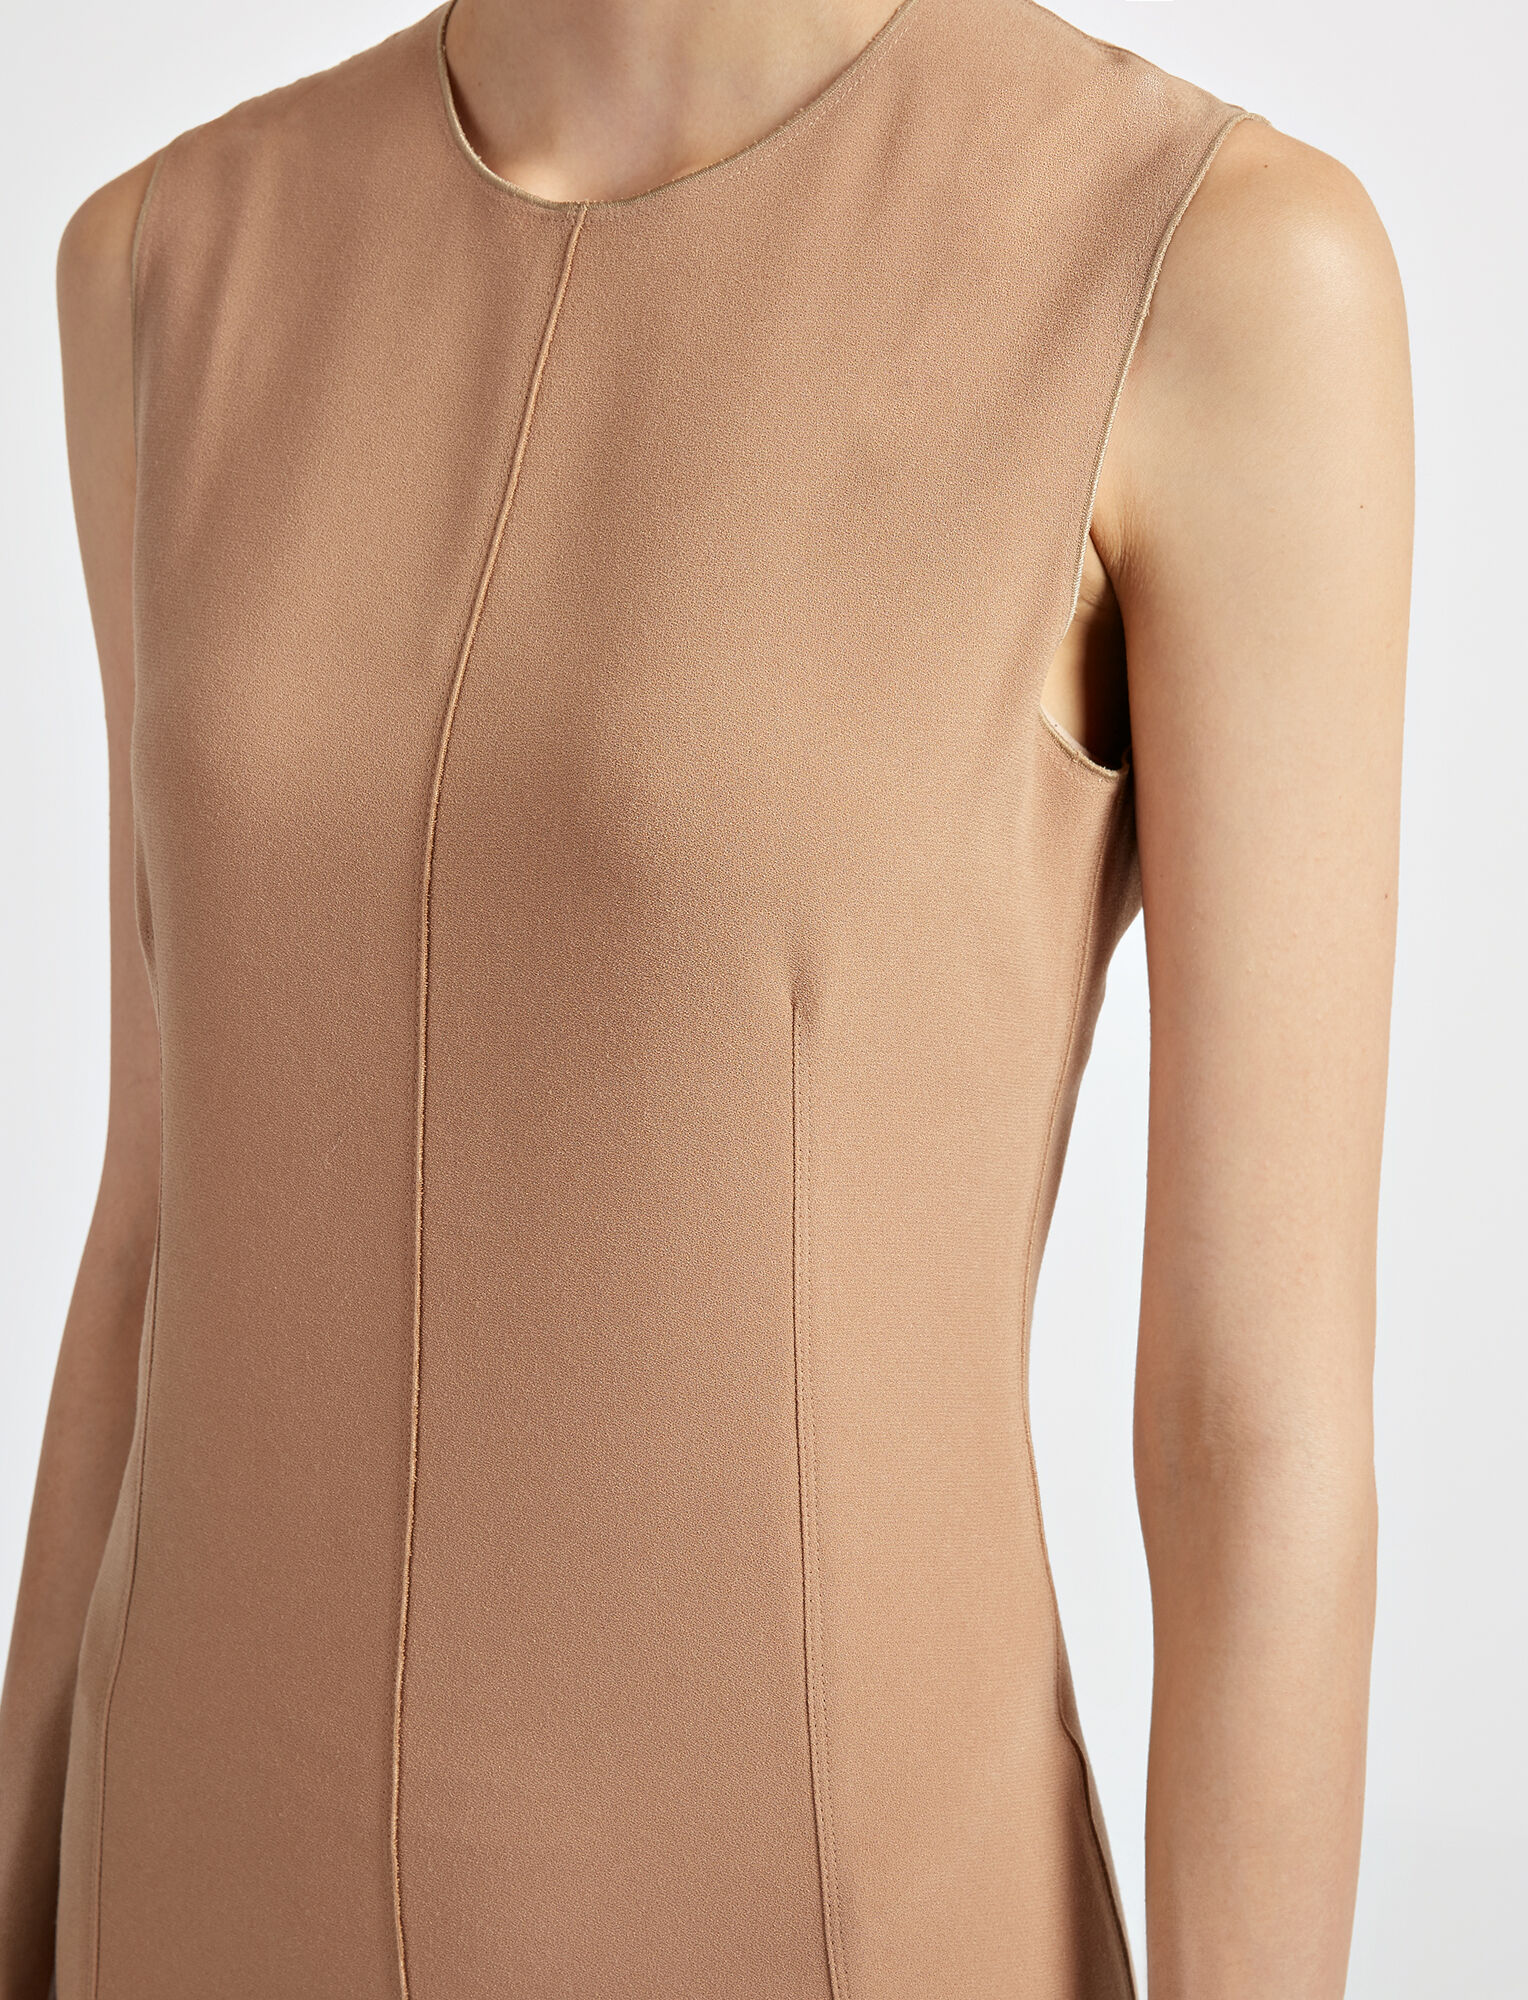 Joseph, Crepe Stretch Sadie Dress, in CAMEL